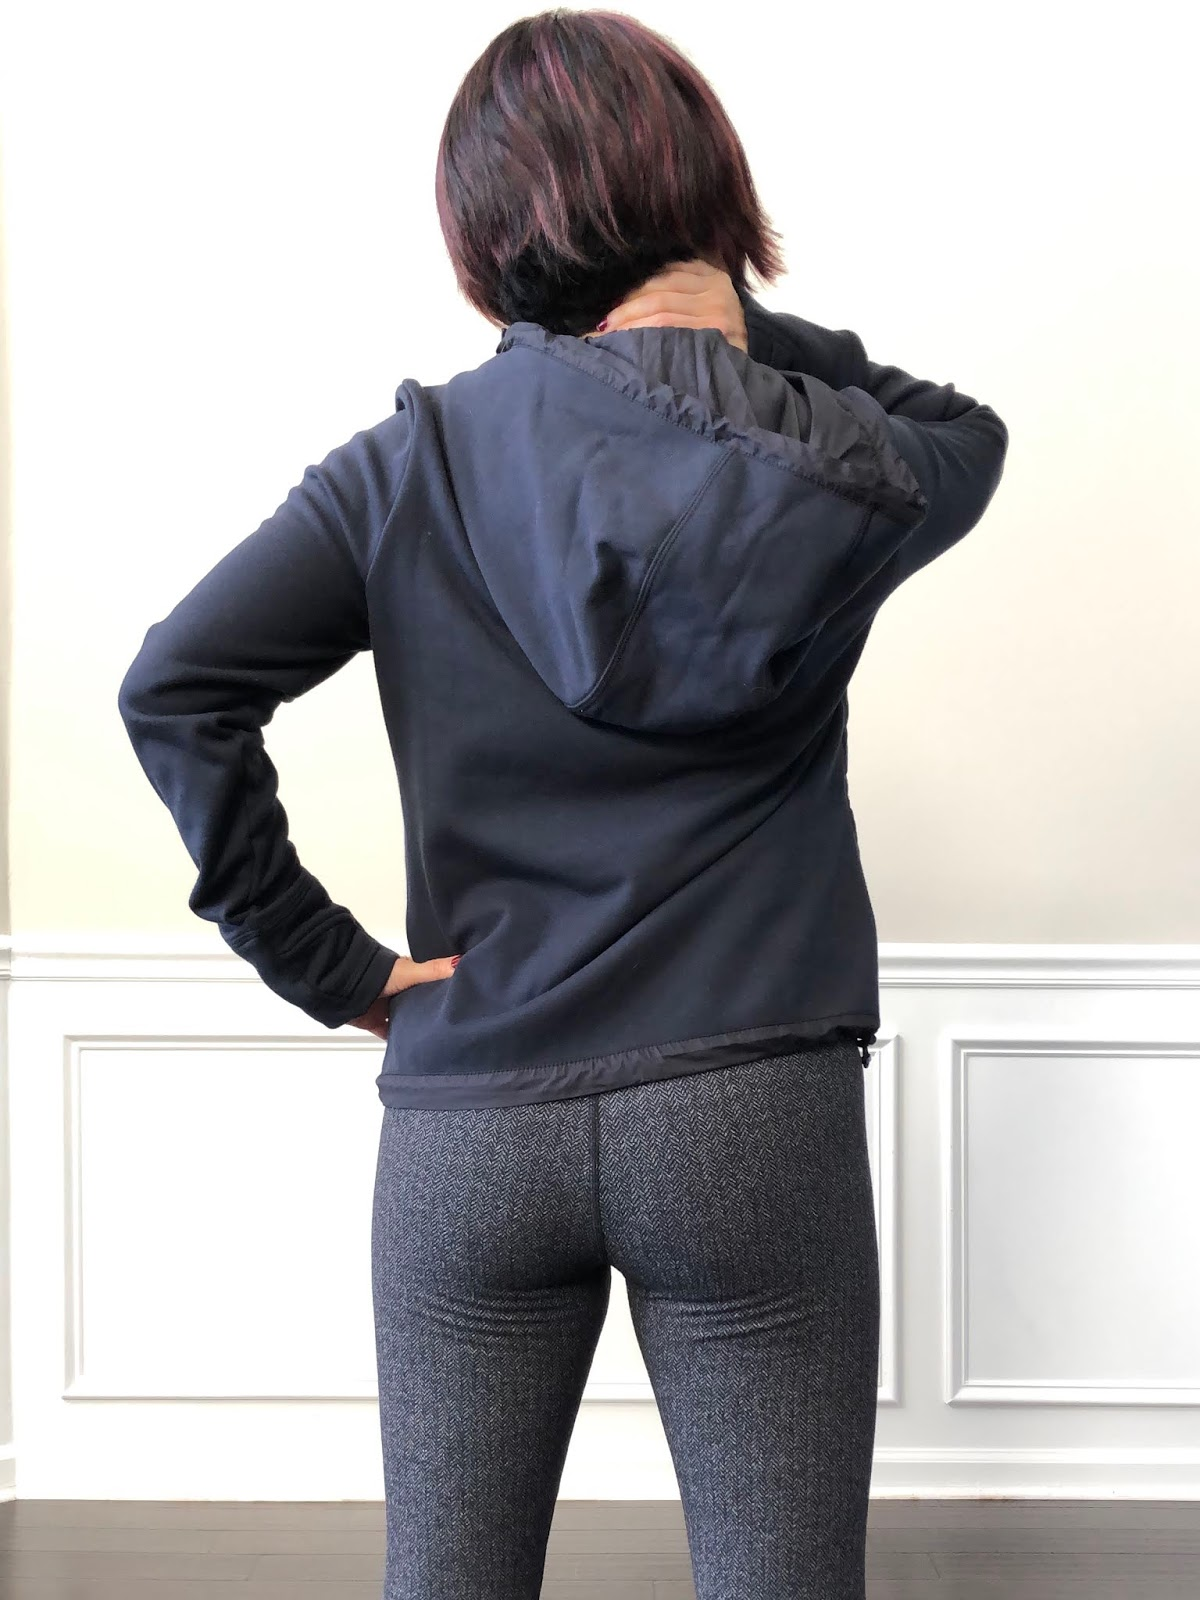 be601707dae Petite Impact  Fit Review Friday! Athleta Cozier Primaloft Hoodie